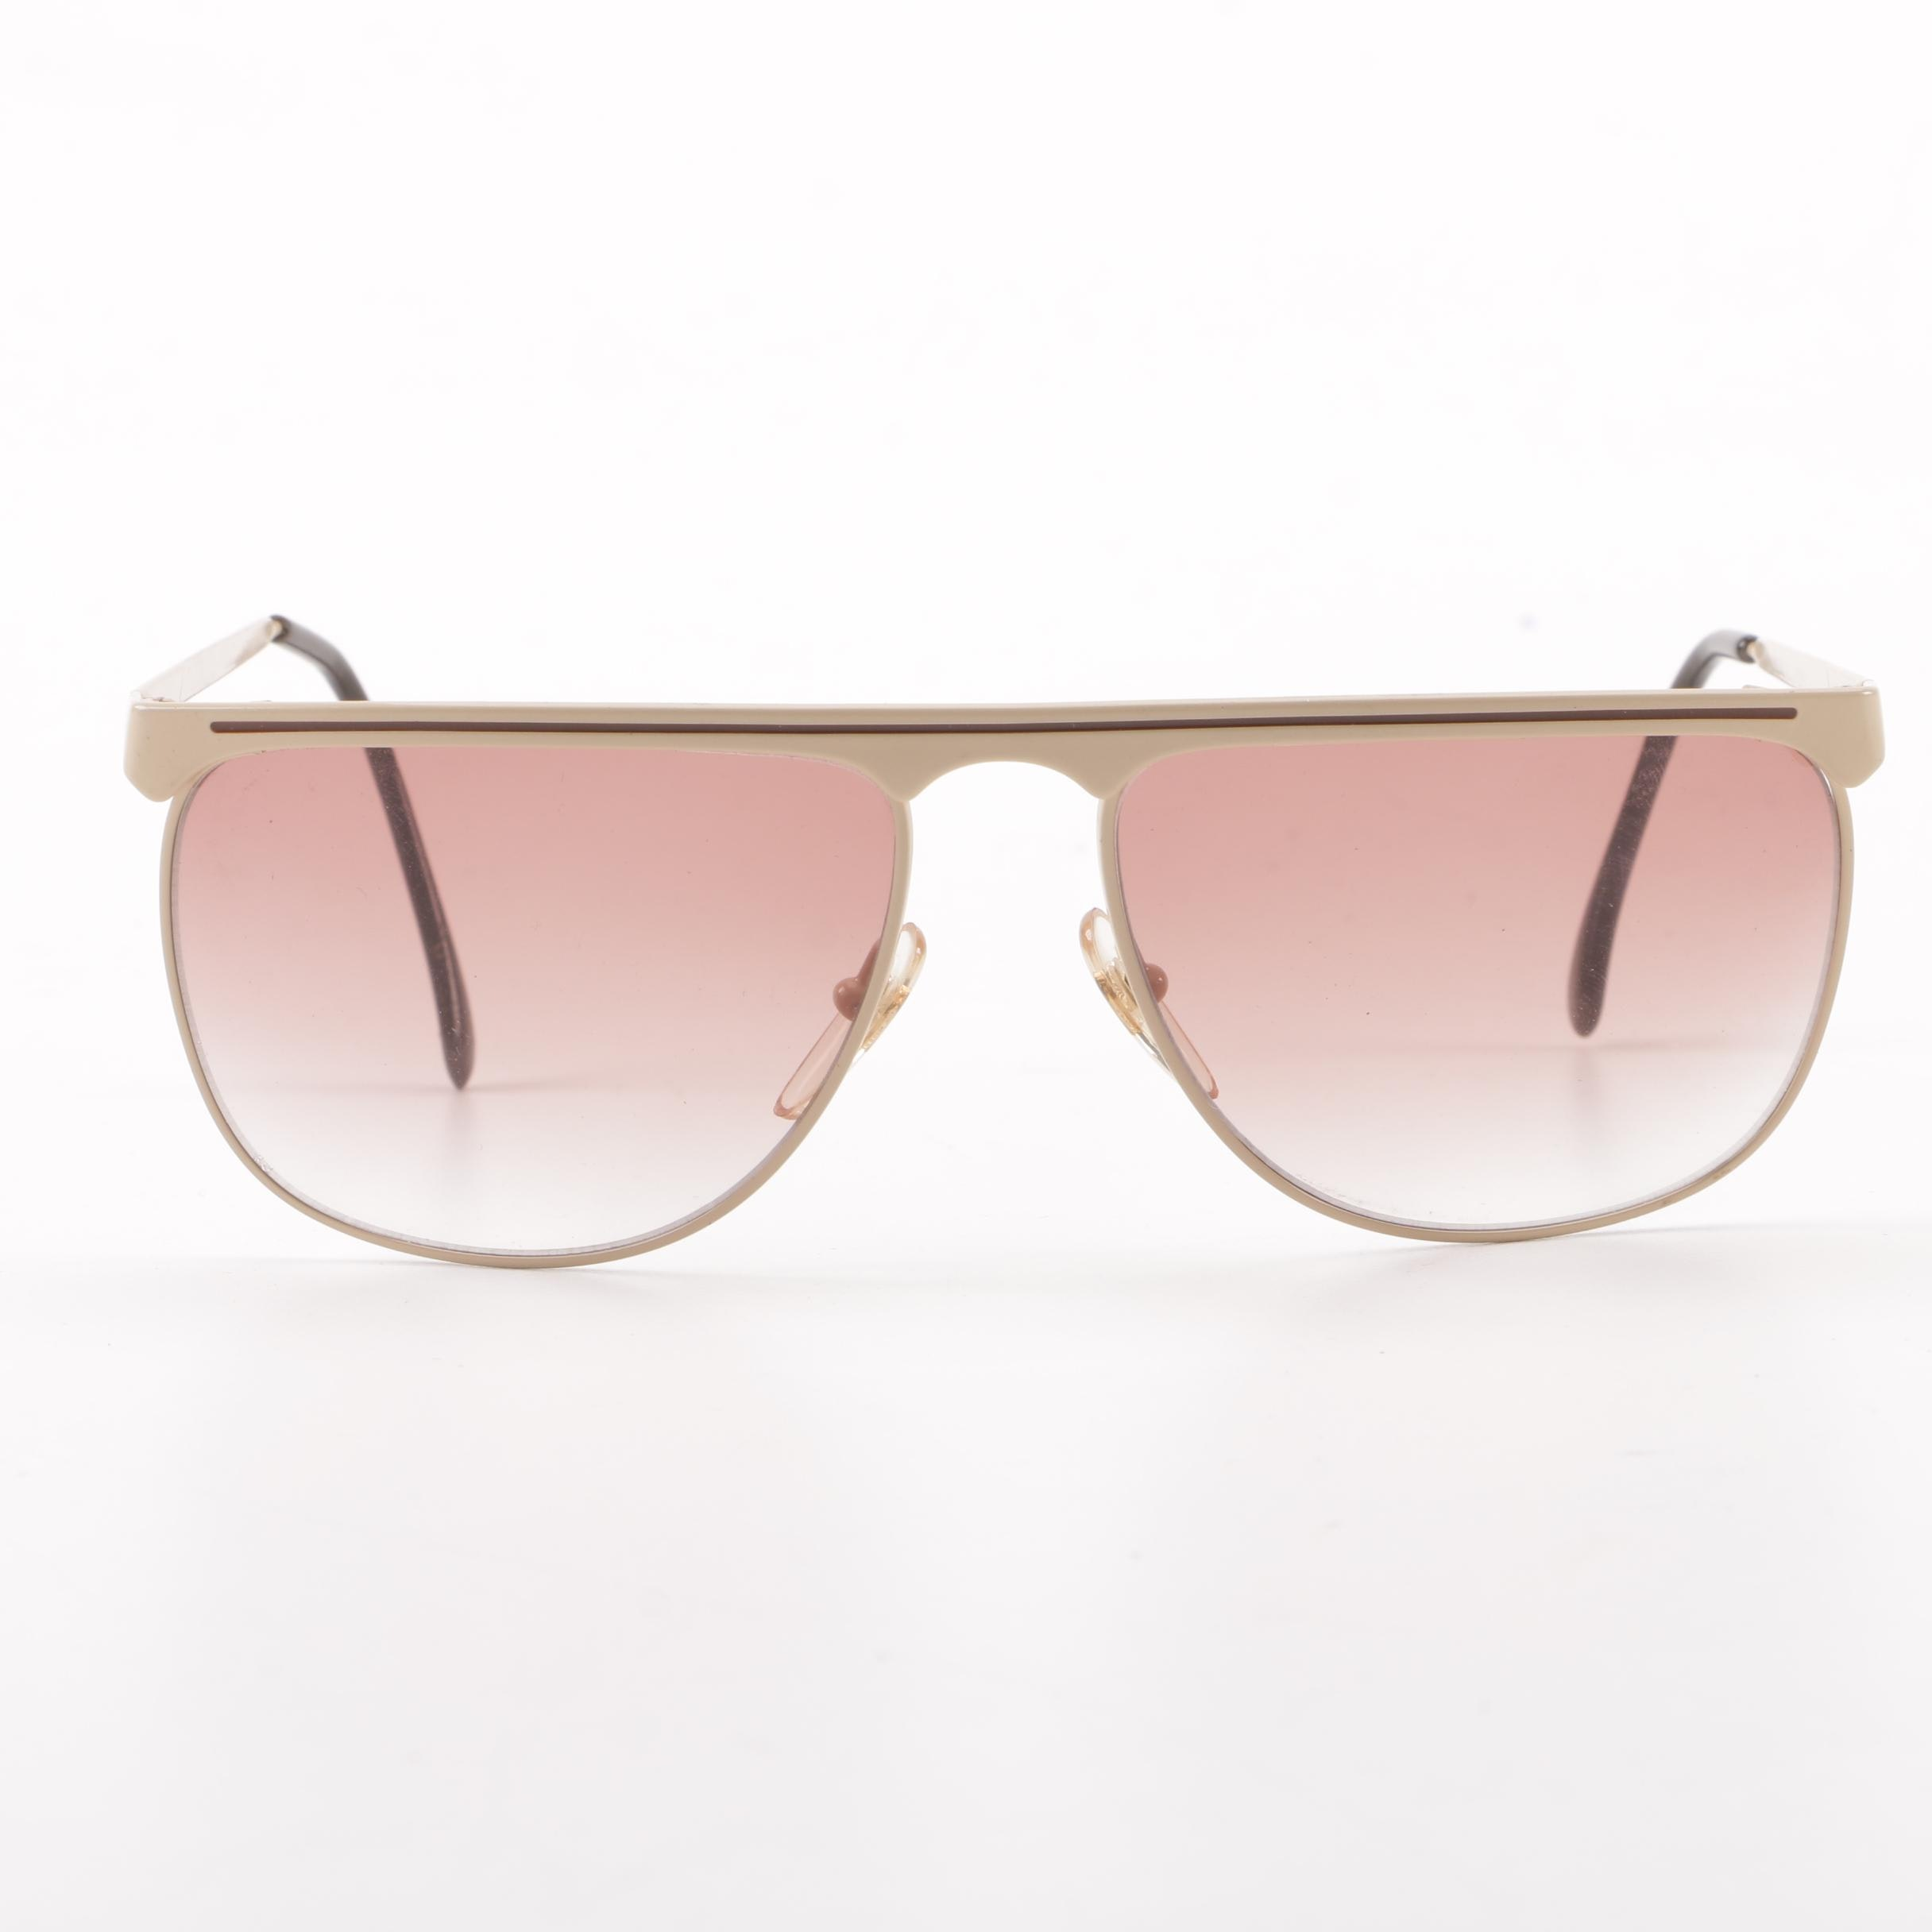 1980s Vintage Laura Biagiotti Continental Sunglasses, Made in Italy